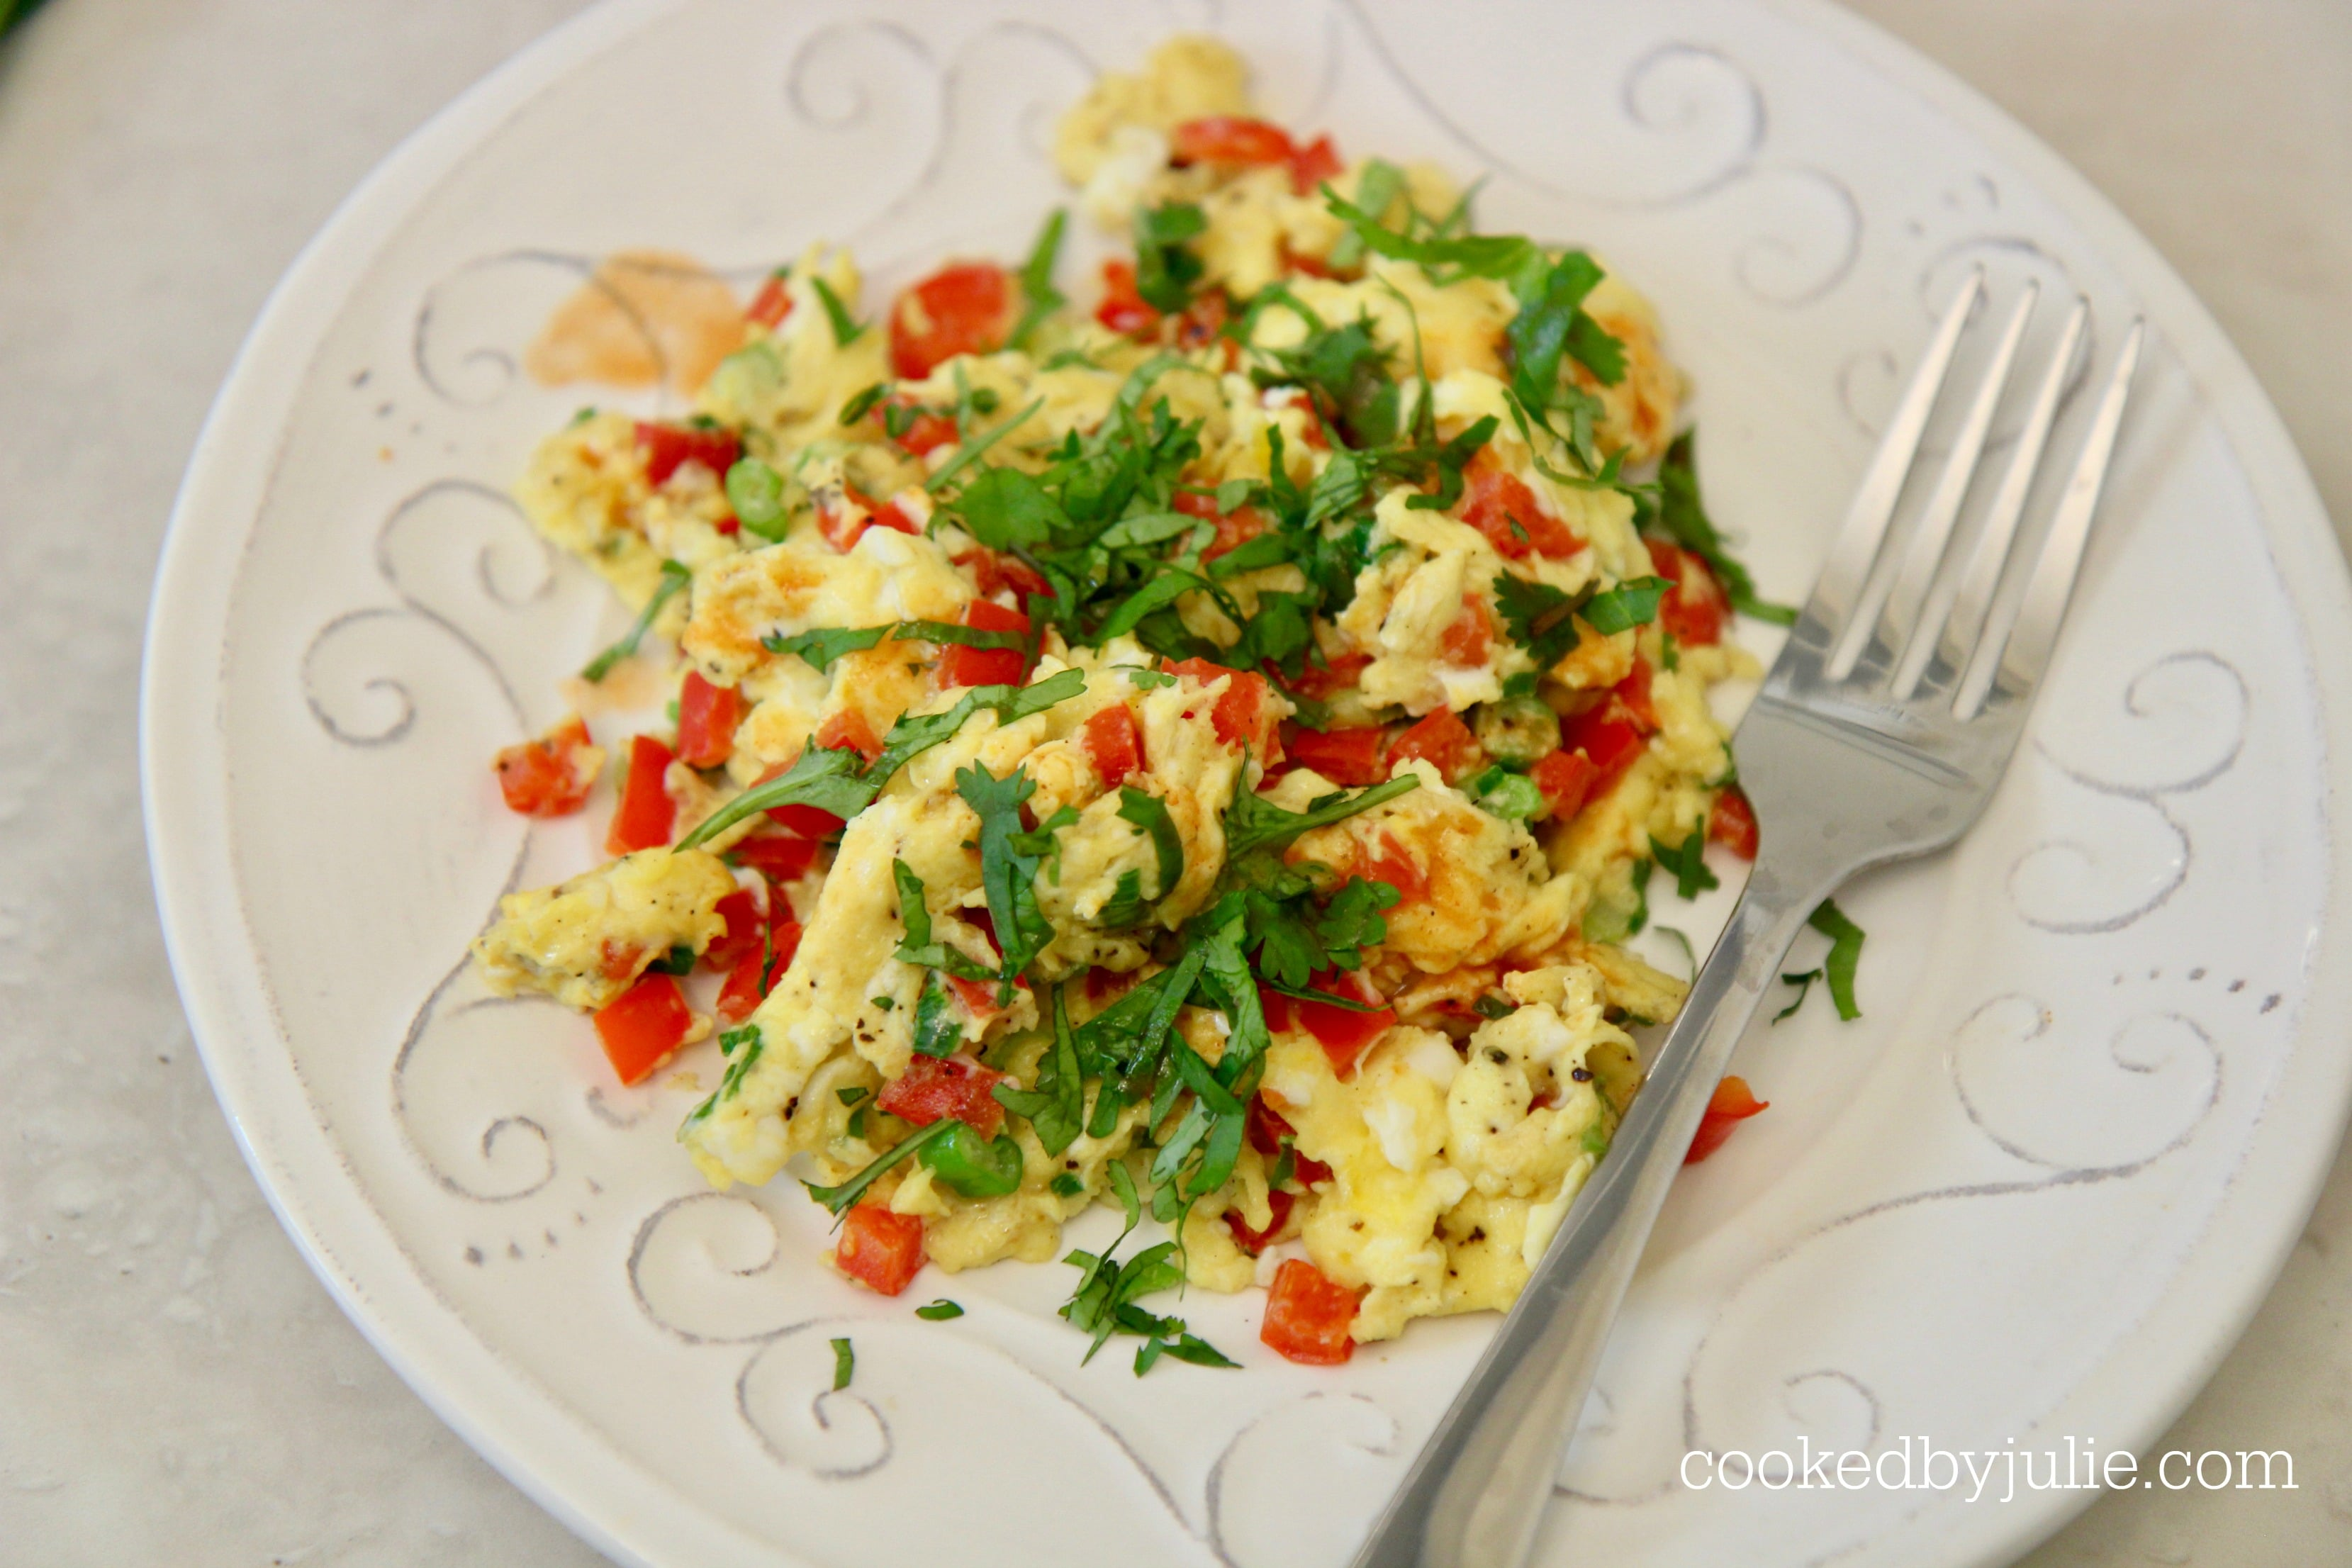 scrambled eggs with peppers and onions make the perfect easy breakfast.